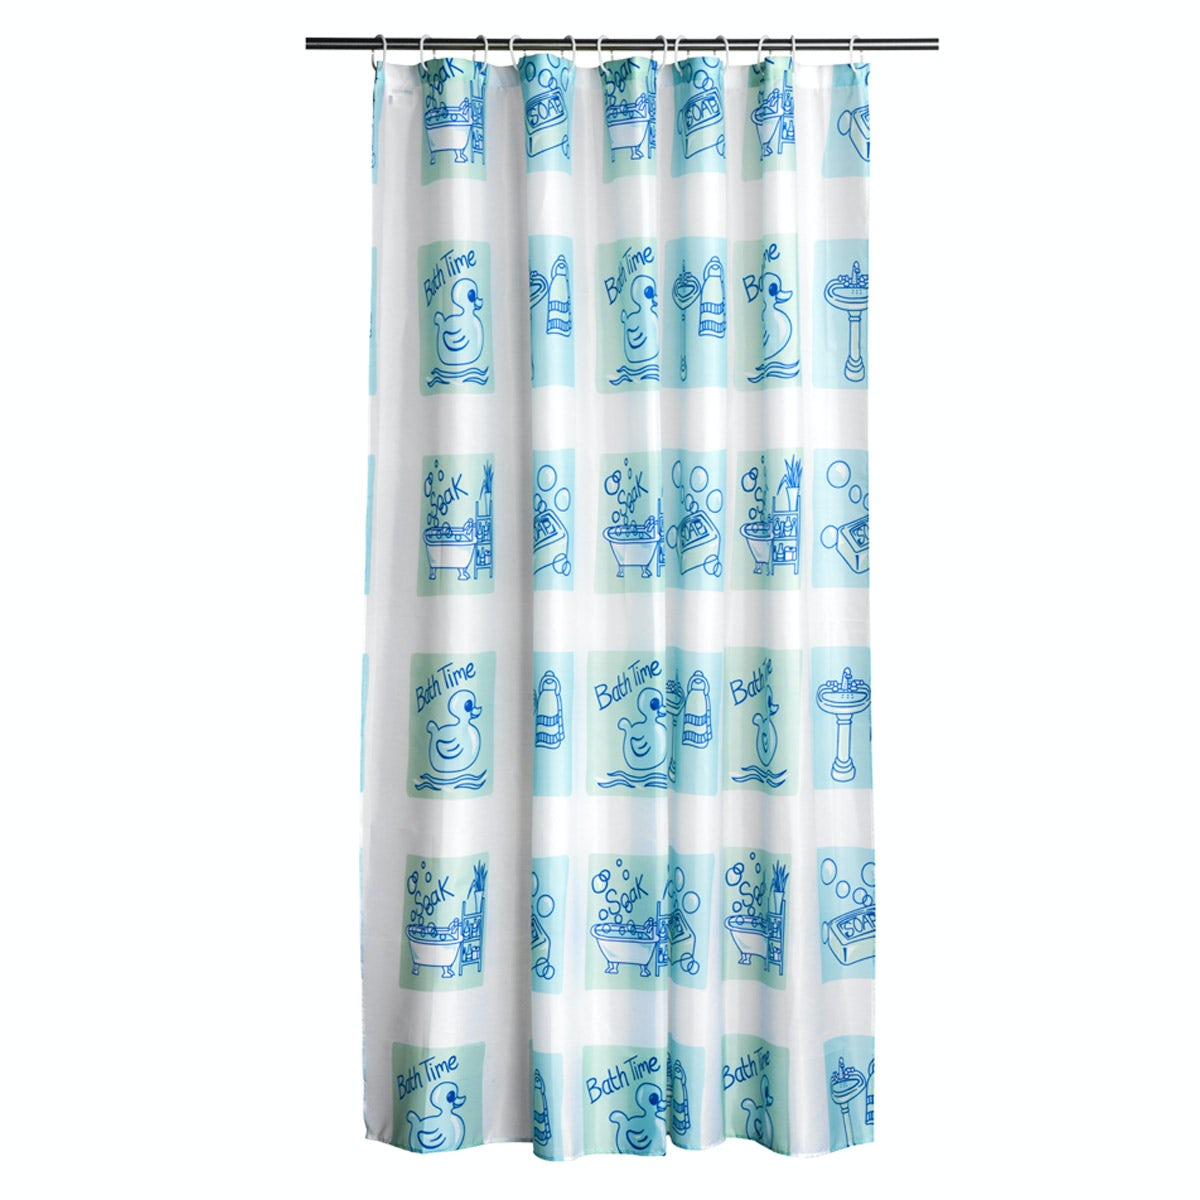 Orchard Bath Time Blue Polyester Shower Curtain Victoriaplum Com